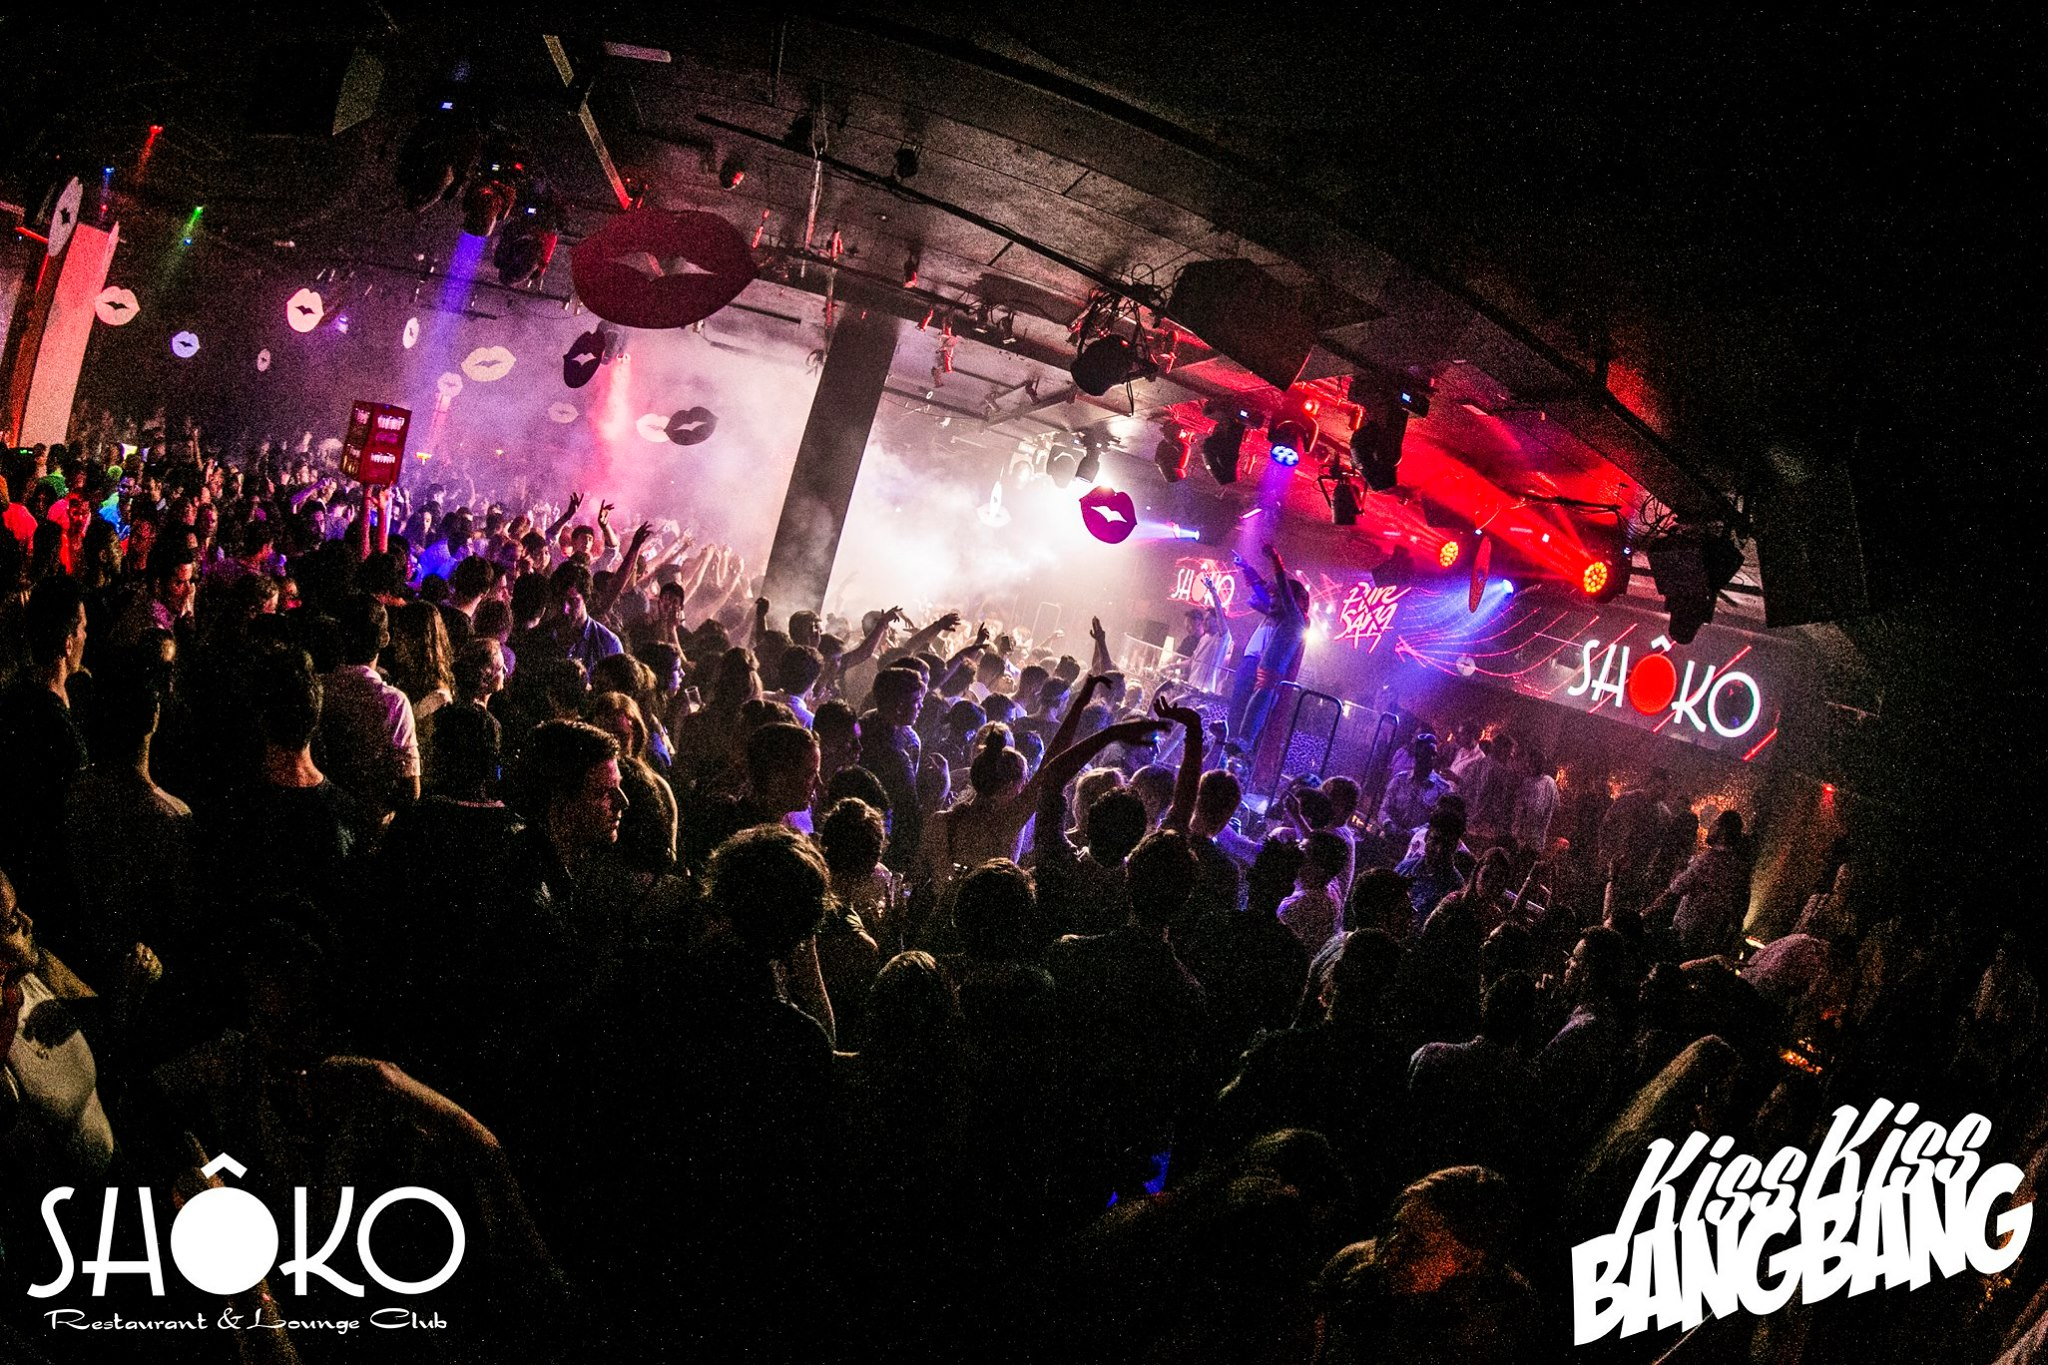 Shoko barcelona vip table bottles from 300 reserve for Shoko barcelona lista